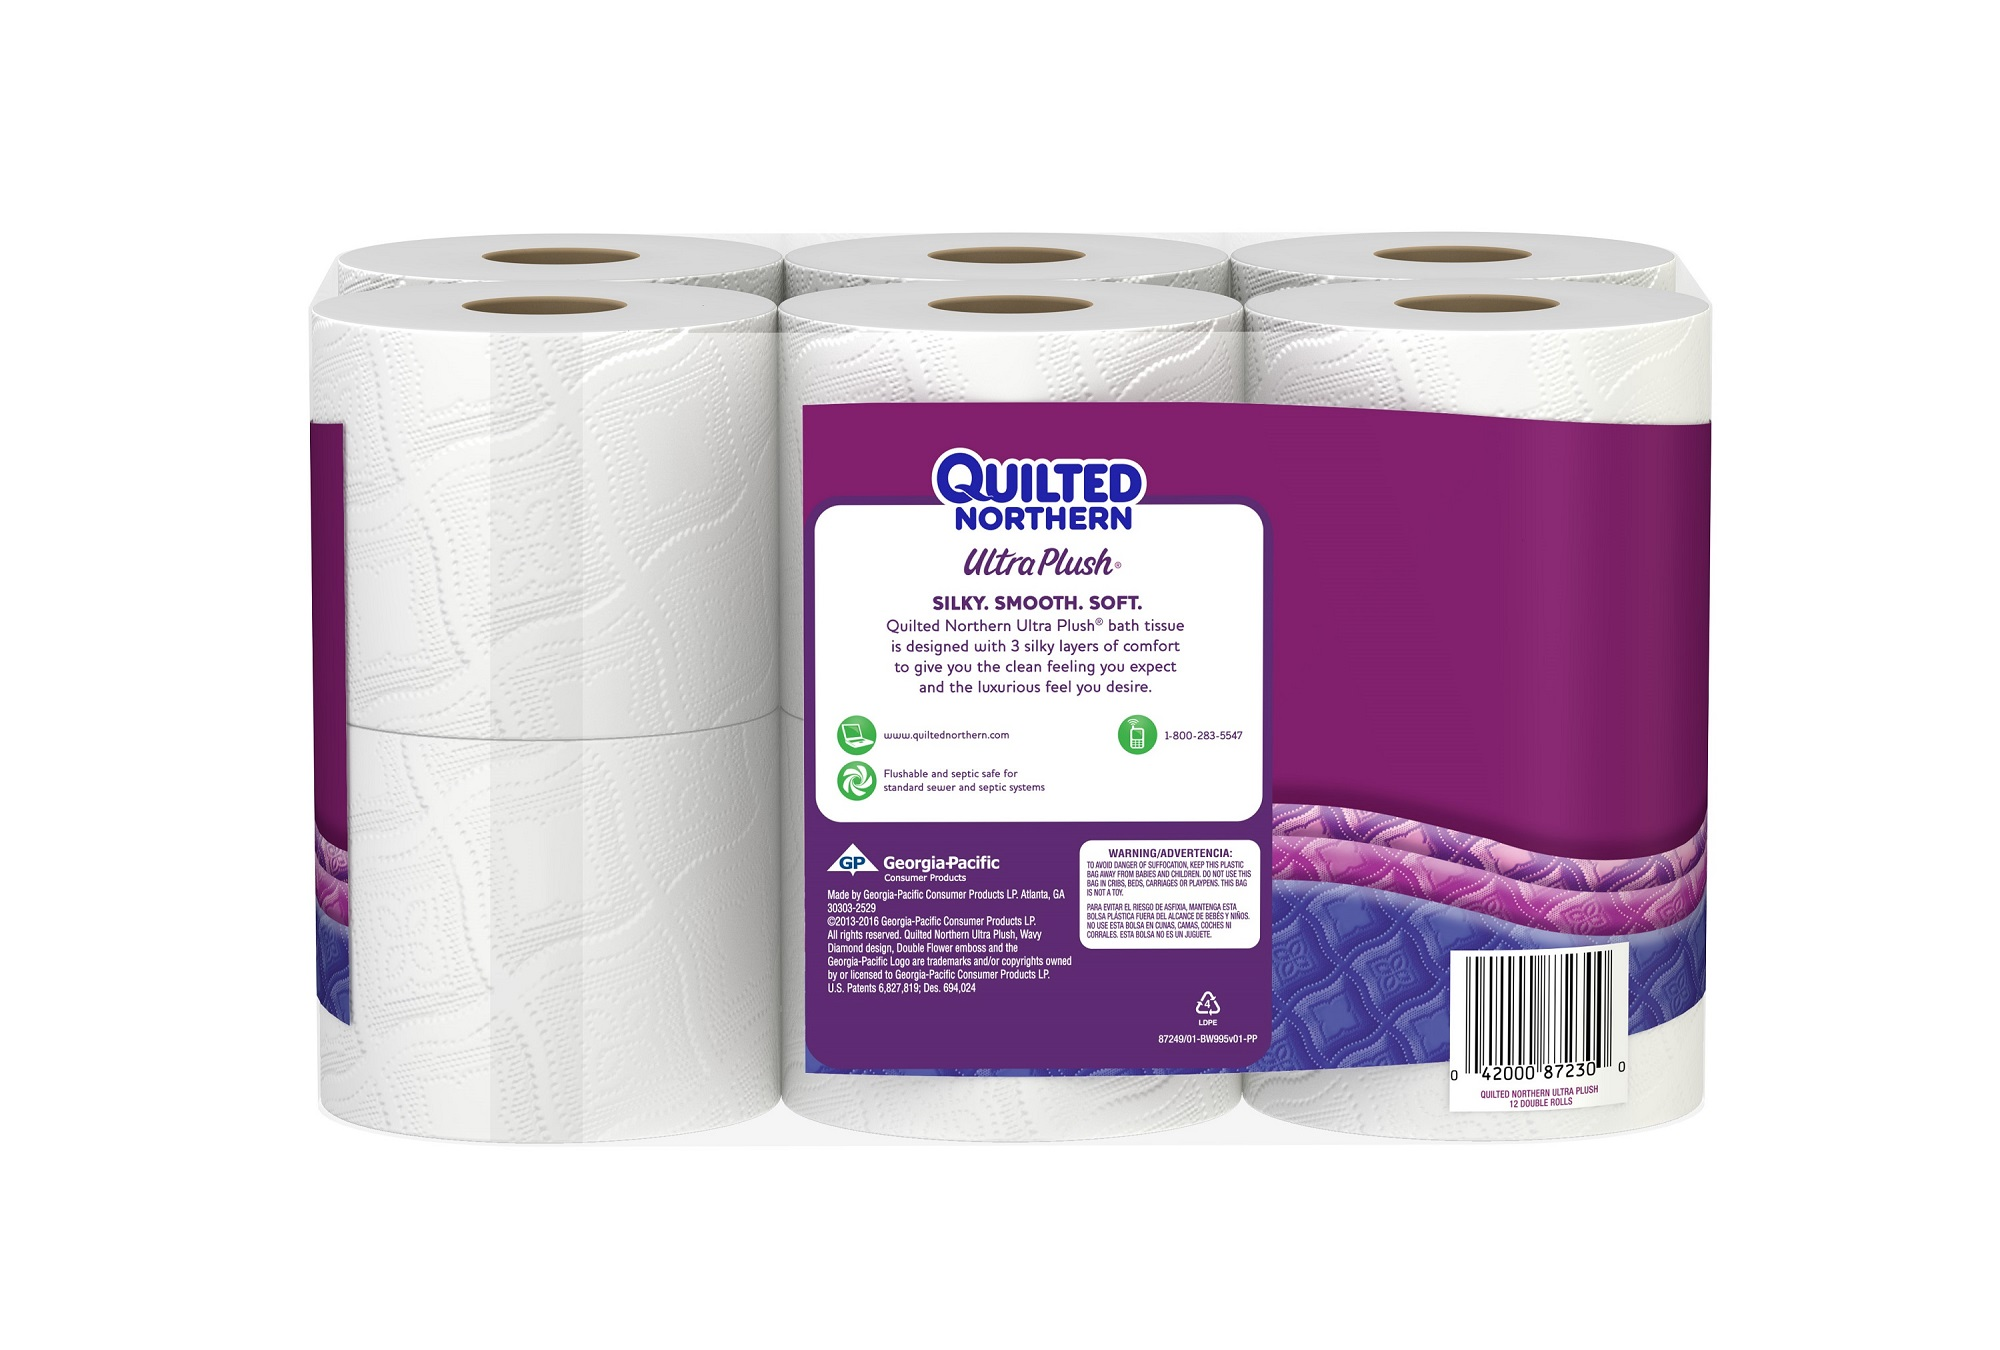 inflow plush res global quilted p cancel bath content tissue ultra inflowcomponent quilt rolls double northern s ct